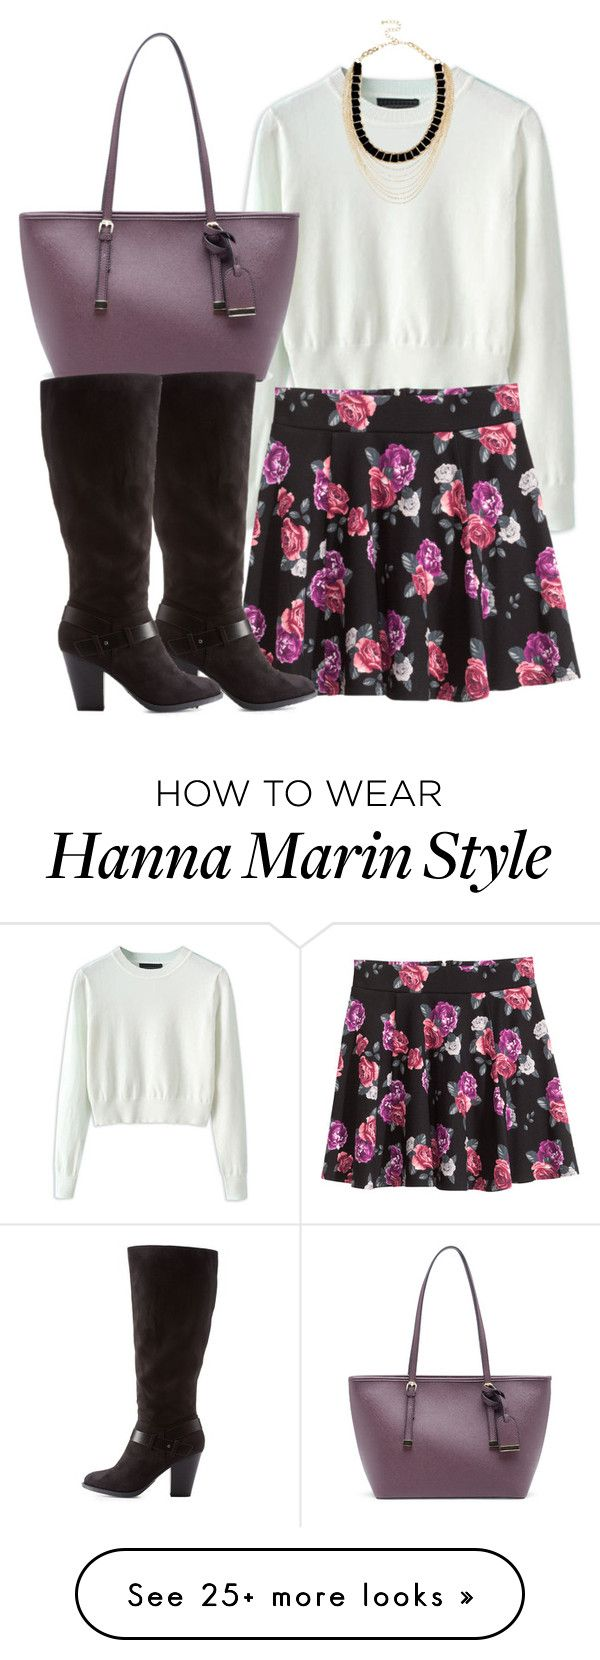 """Hanna Marin inspired outfit with requested skirt"" by liarsstyle on Polyvore featuring H&M, Sole Society, Charlotte Russe, River Island and WF"